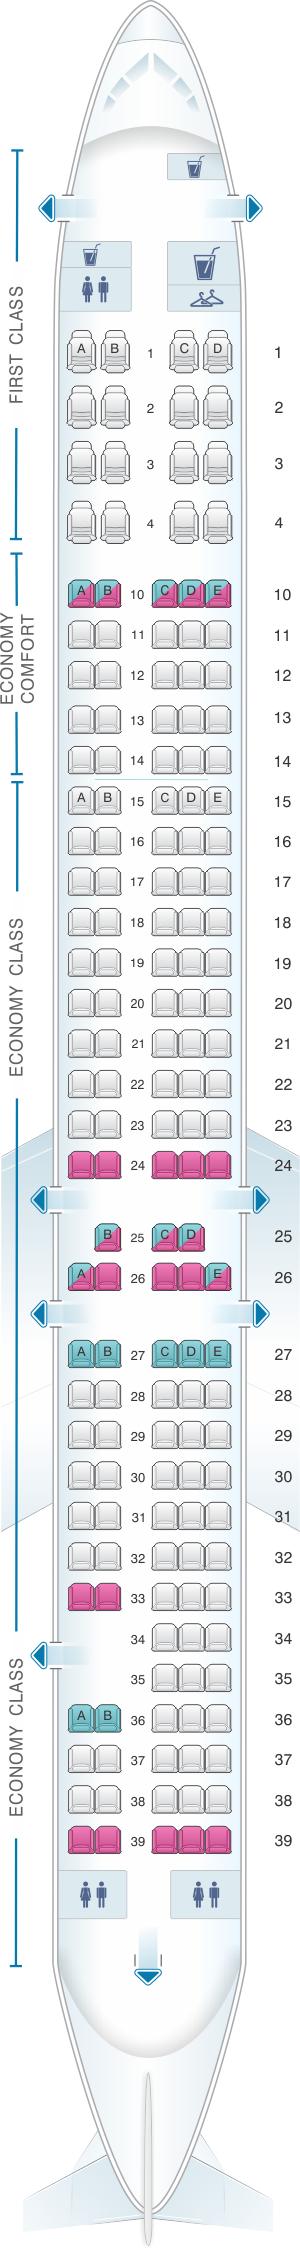 Seat map for McDonnell Douglas MD 90